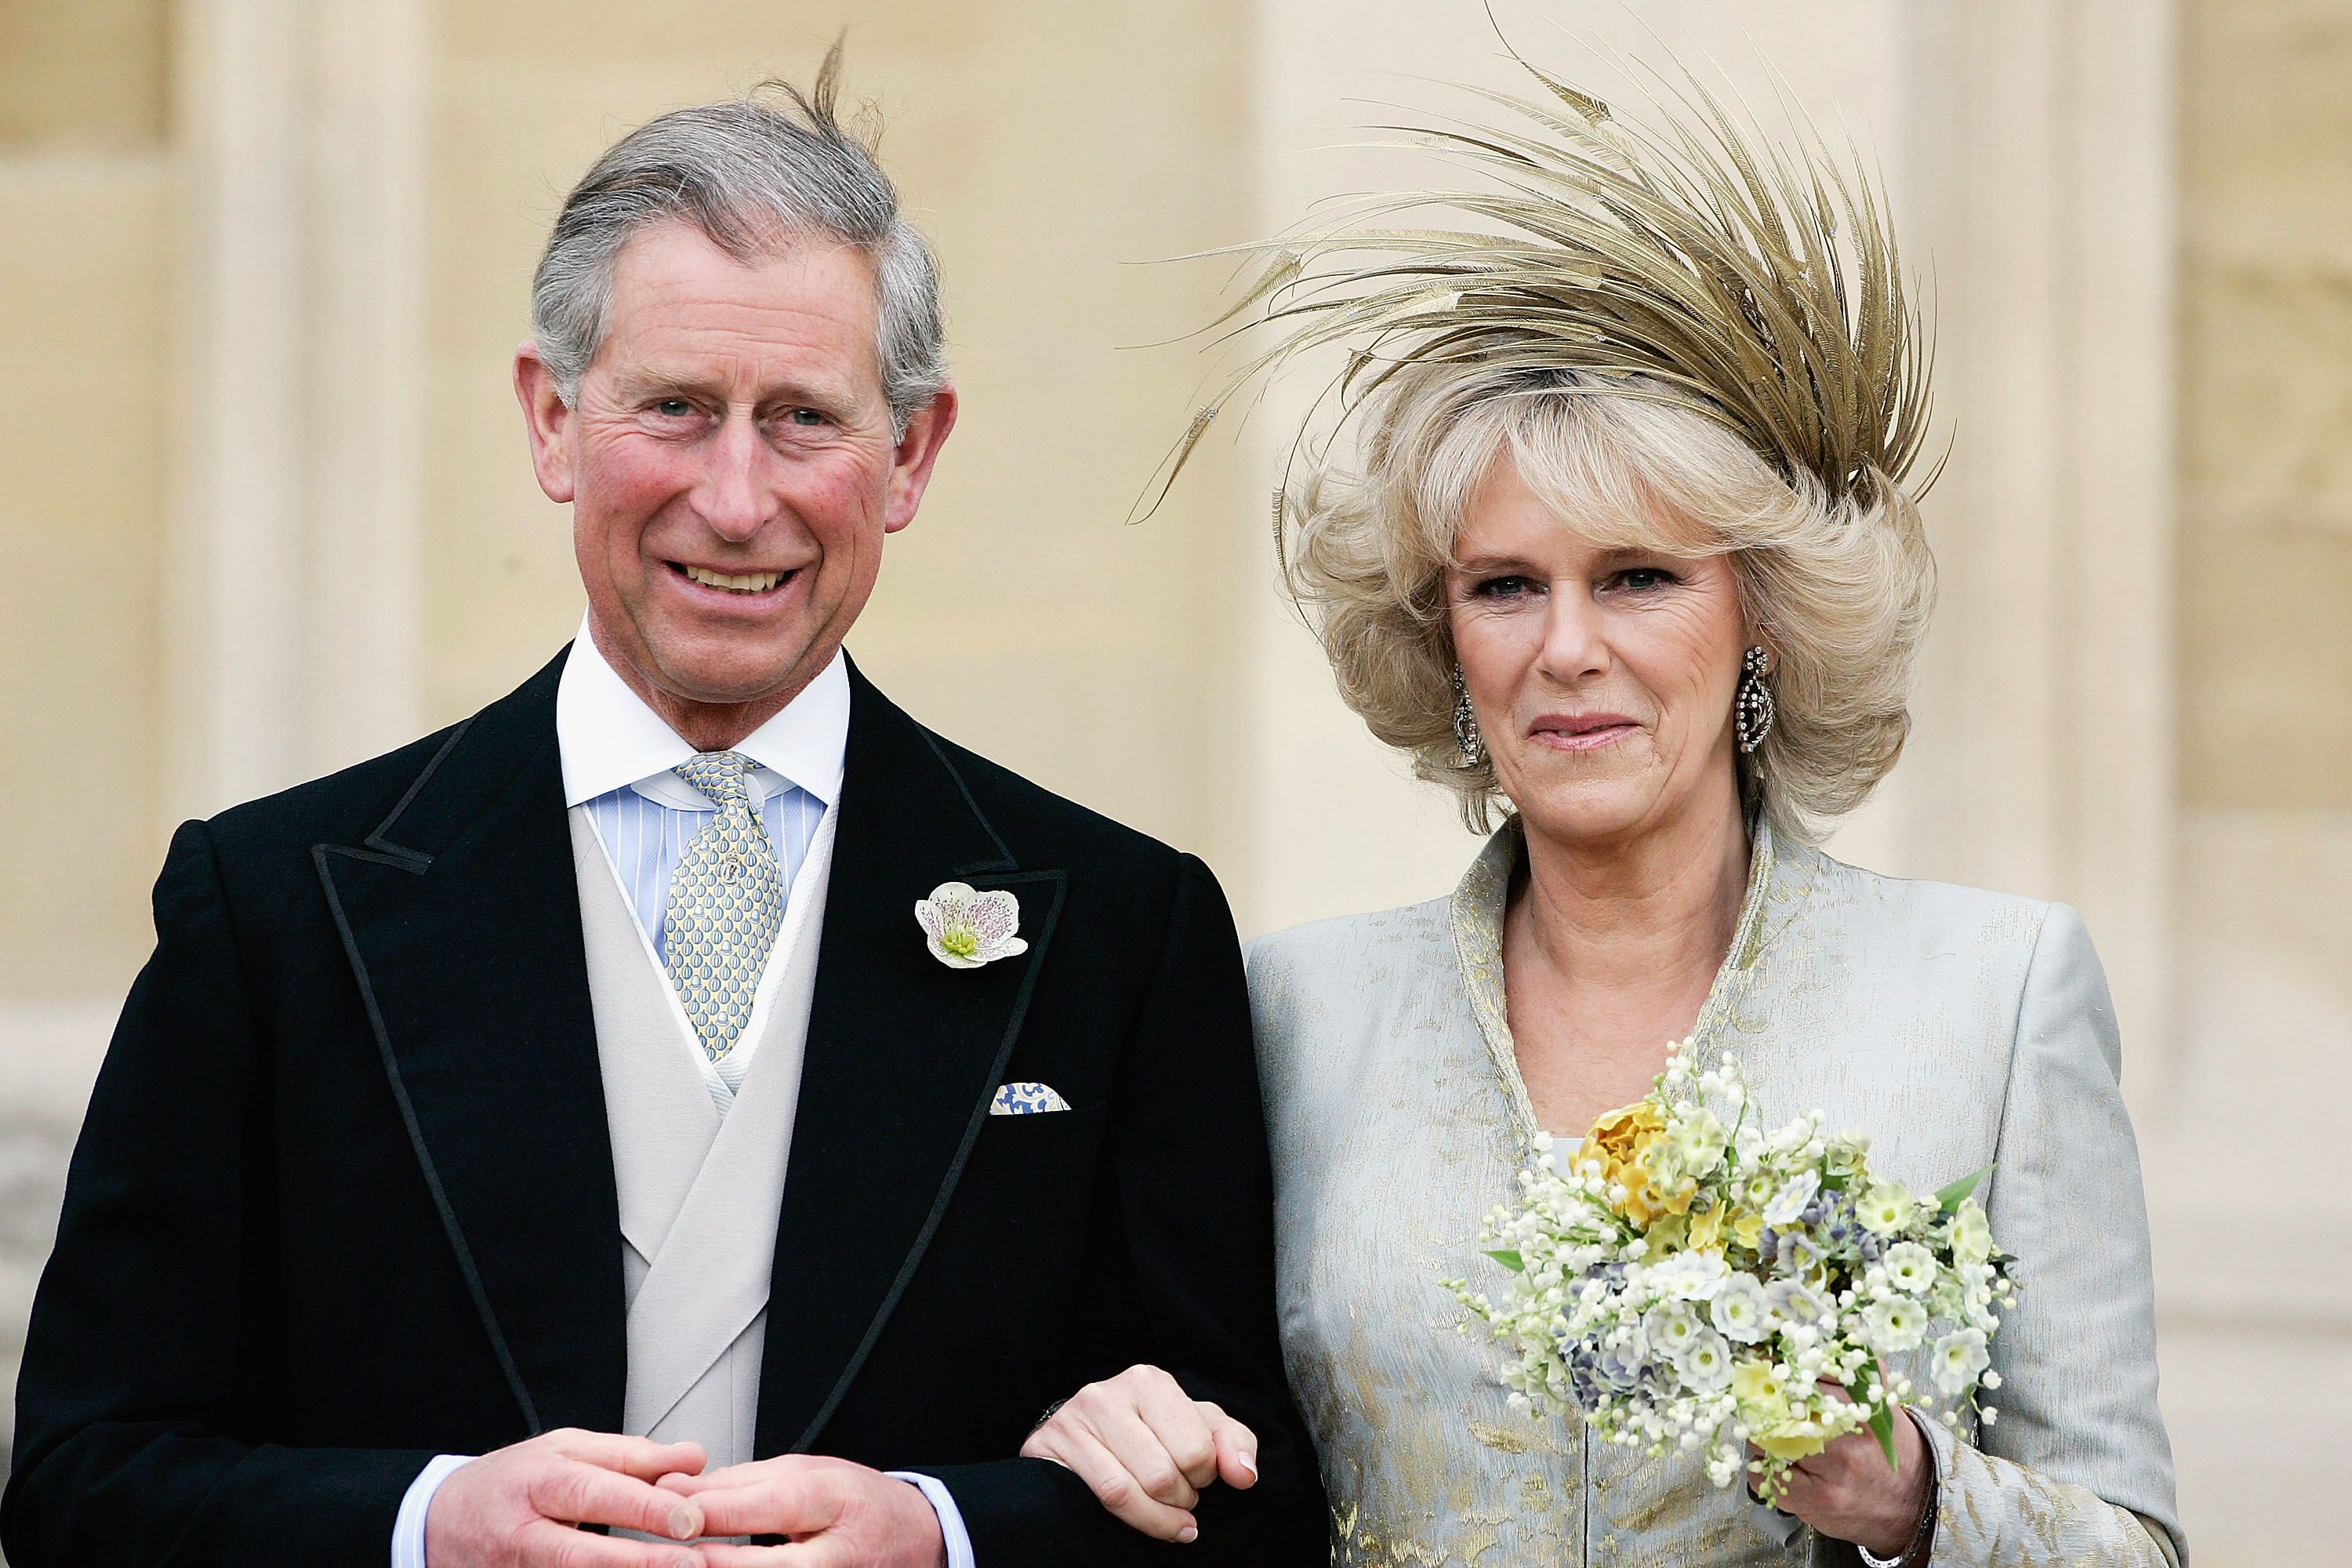 Prince Charles, and The Duchess Of Cornwall, Camilla Parker Bowles after their marriage blessing at Windsor Castle on April 9, 2005 in Berkshire, England | Source: Getty Images